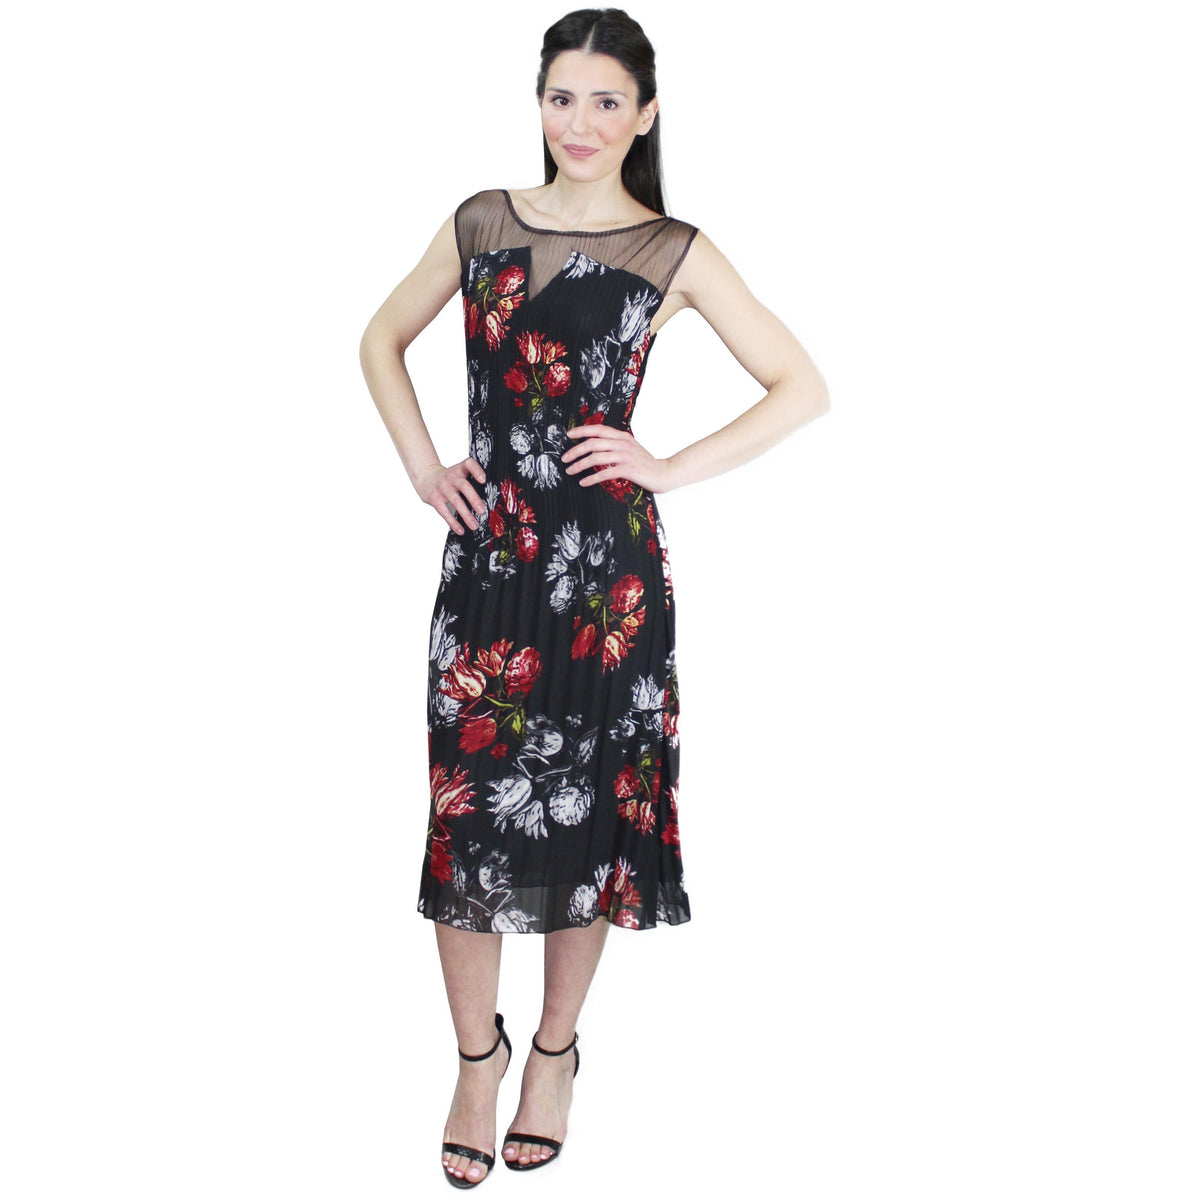 Sleeveless Illusion Floral Crinkle Dress - Red